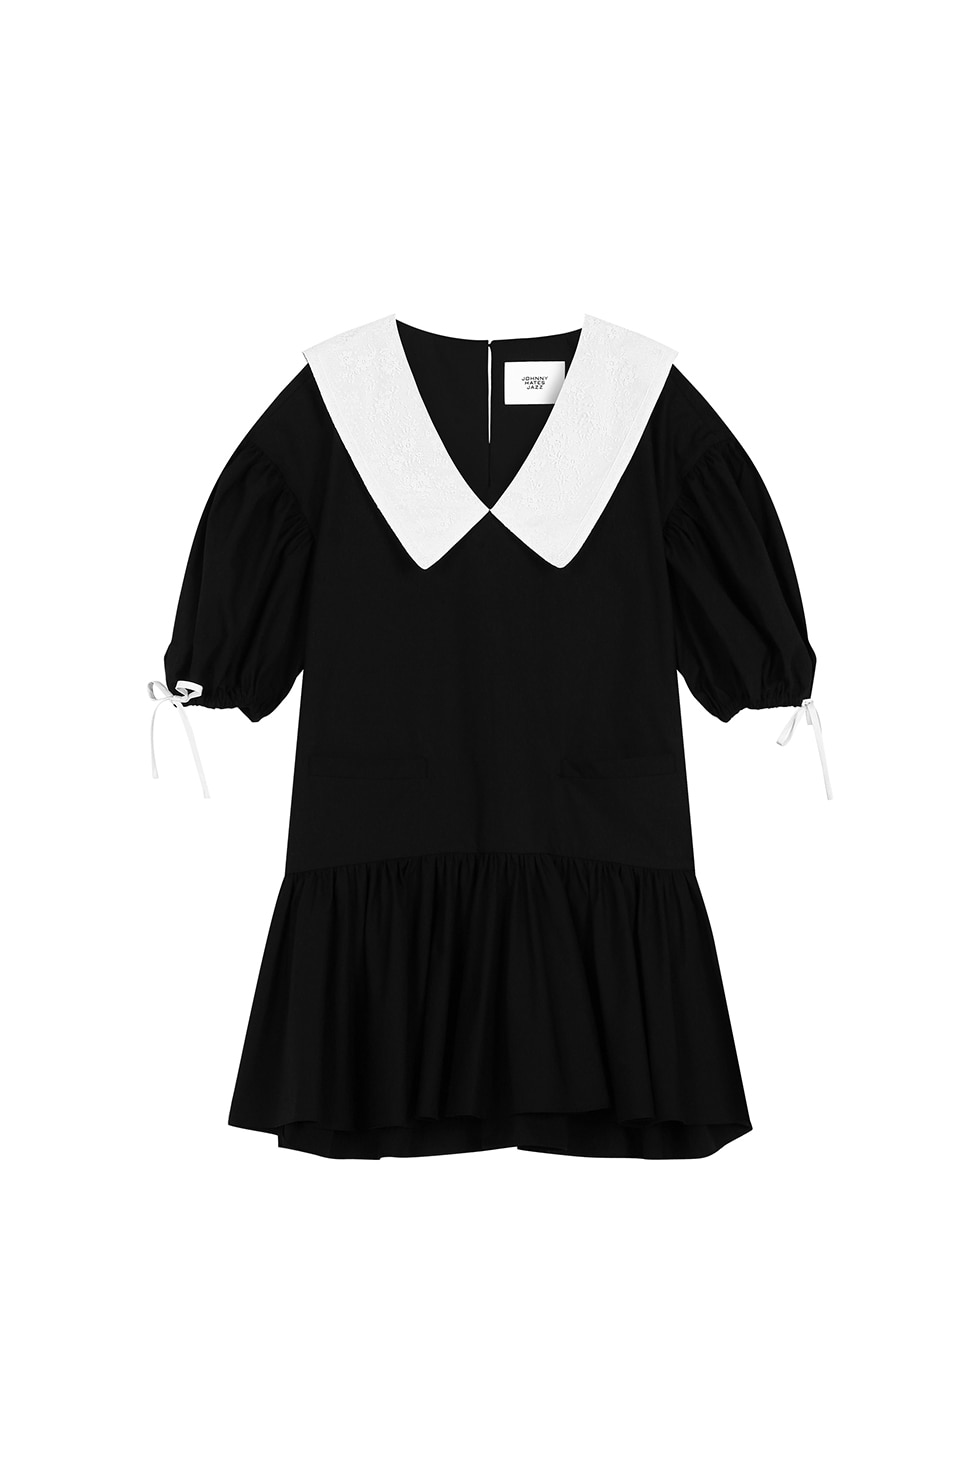 LACE COLLAR MINI-DOLL DRESS - BLACK